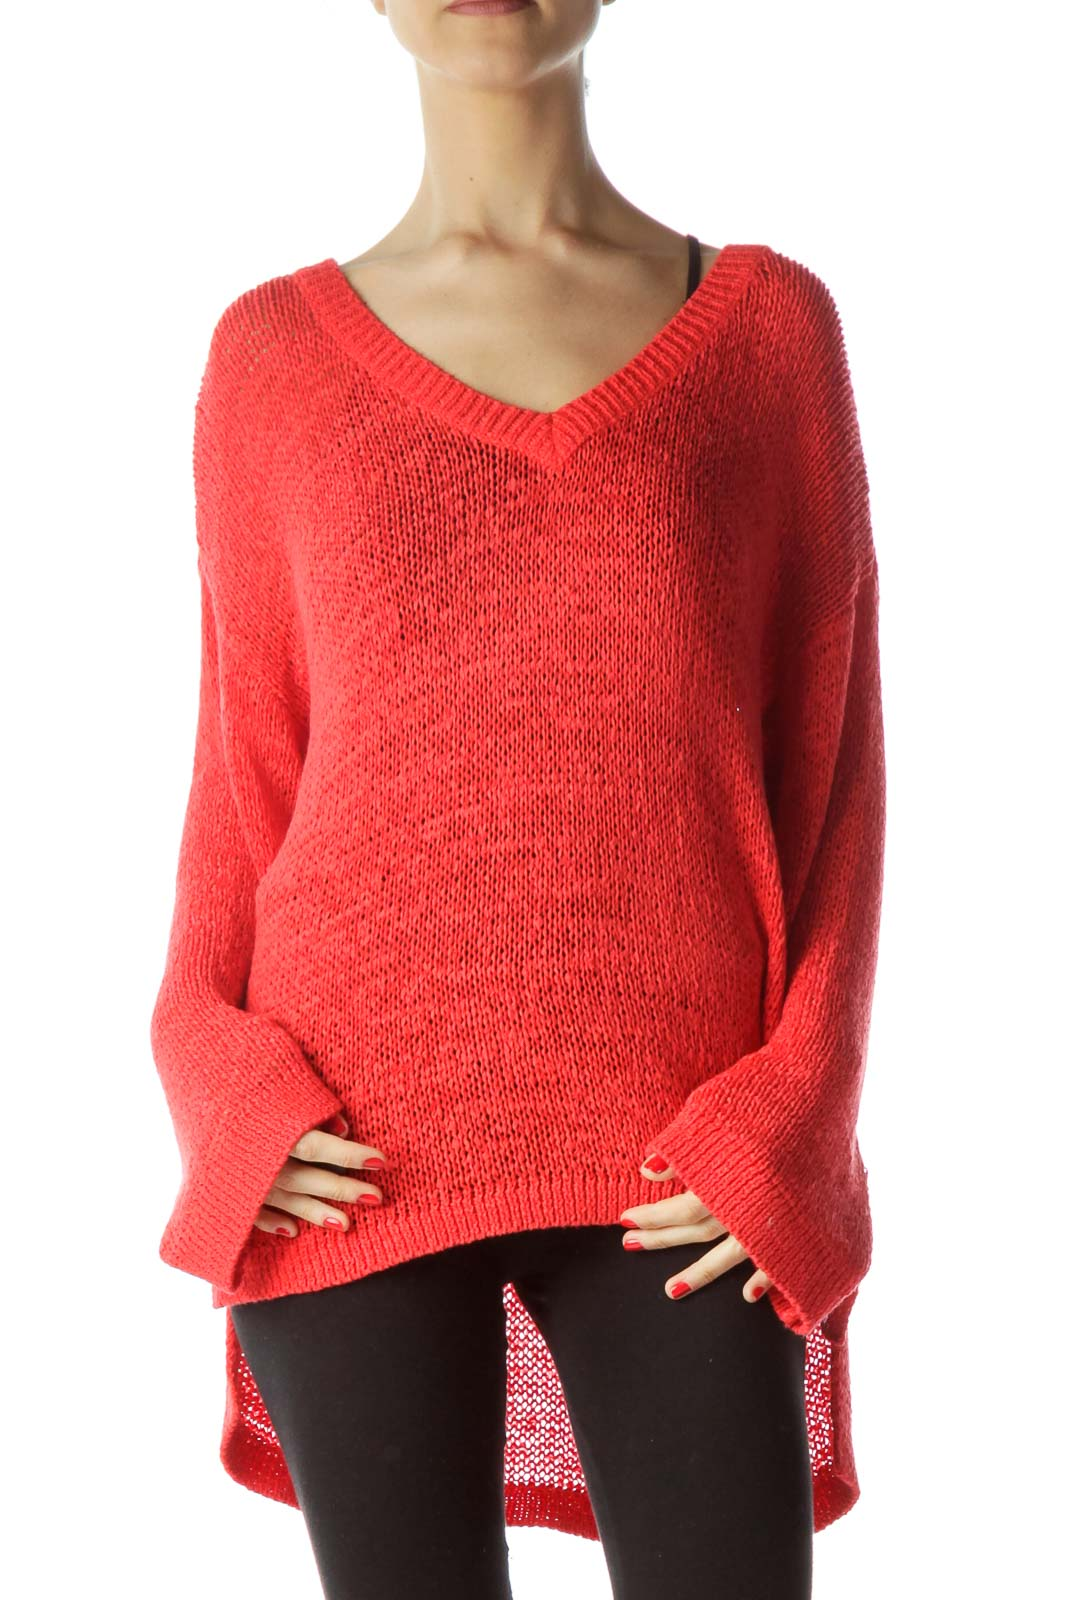 Red V-Neck See-Through Loose Knit Top Front